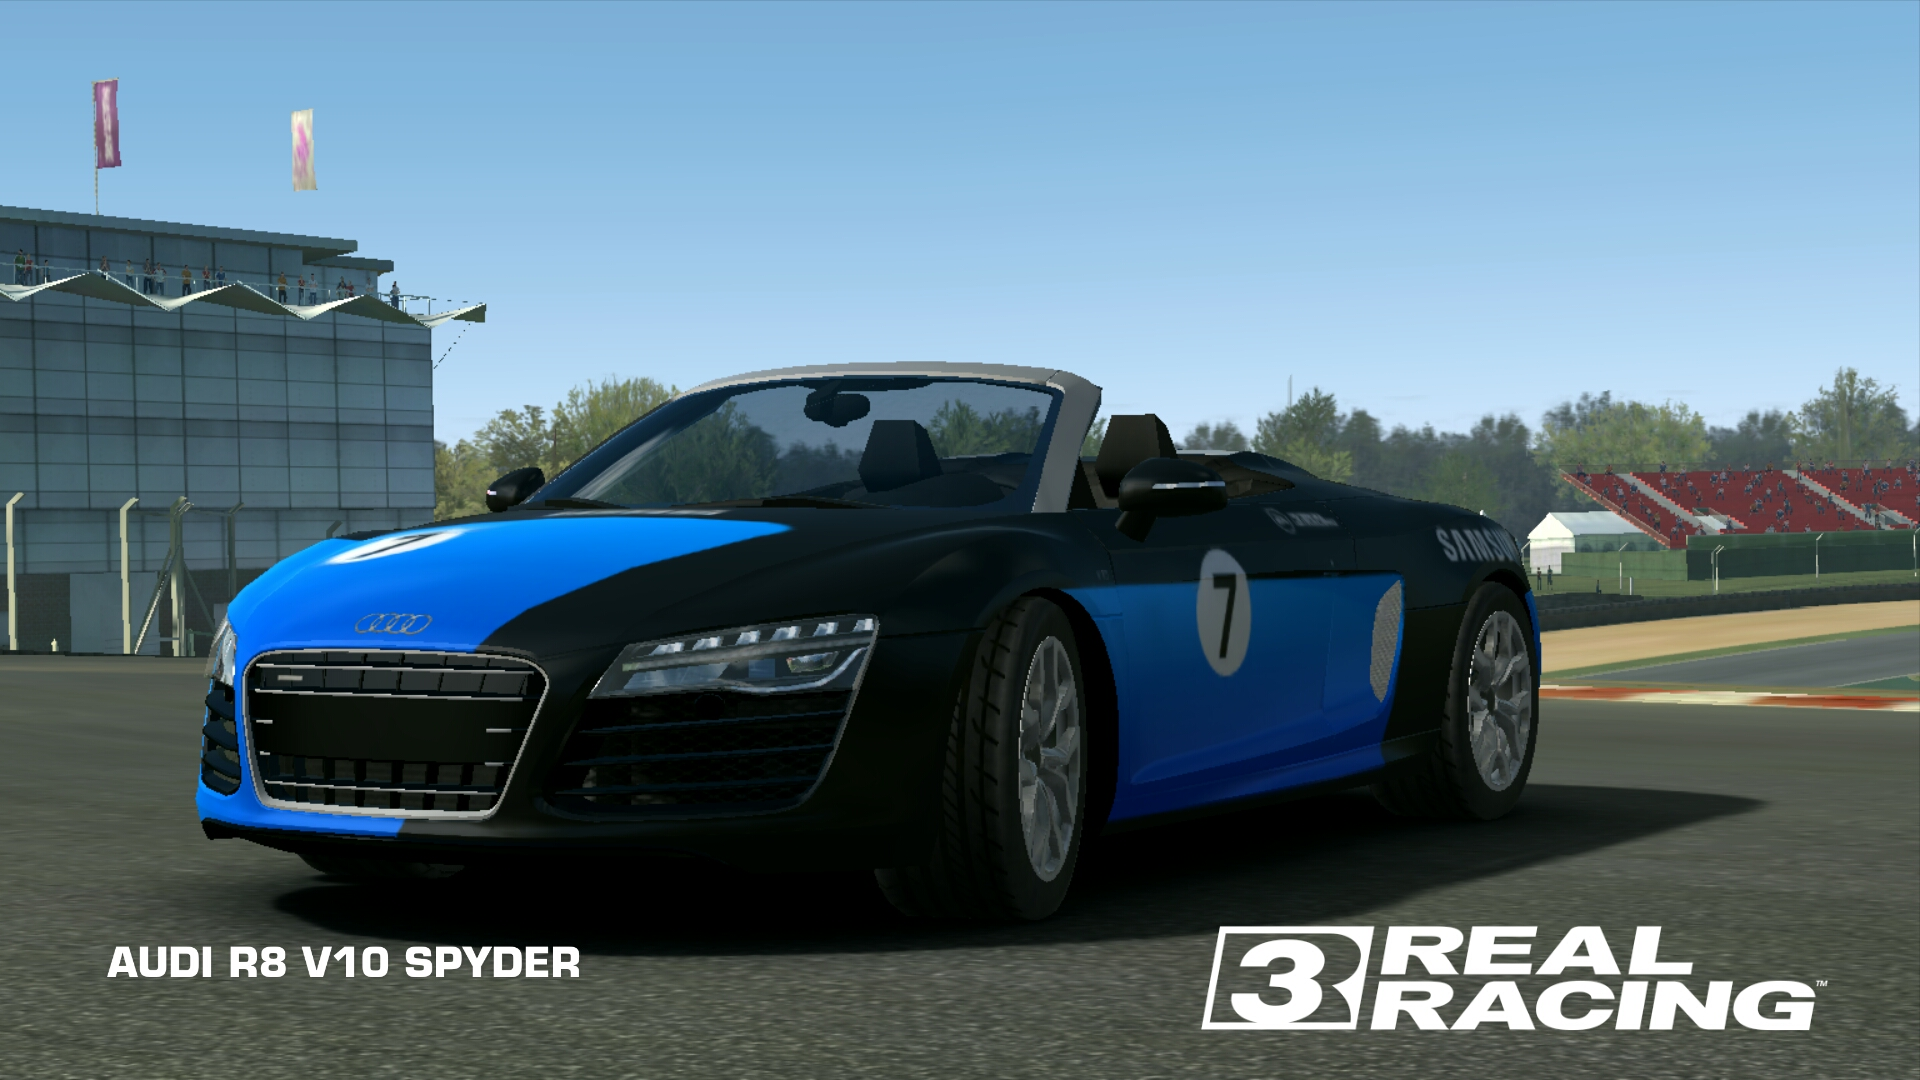 AUDI R V SPYDER Real Racing Wiki FANDOM Powered By Wikia - Audi r8 v10 spyder